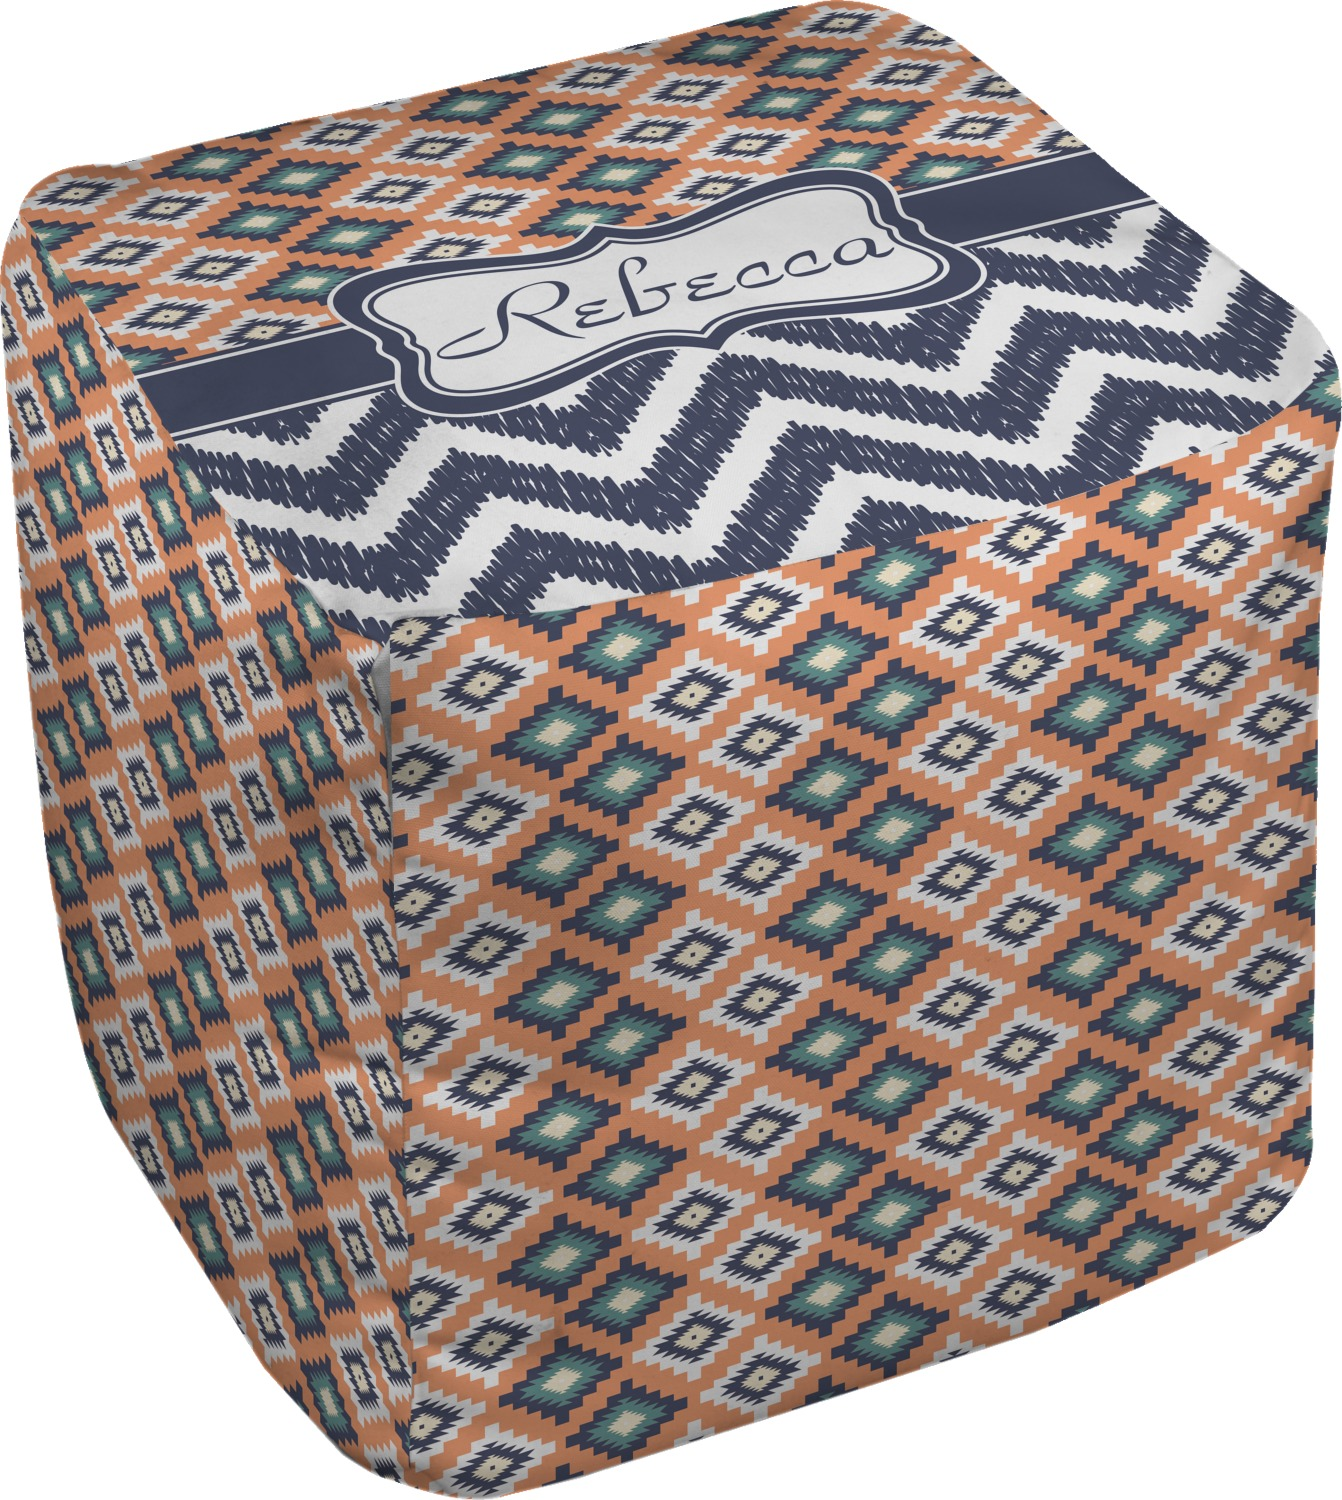 tribal cube pouf ottoman personalized youcustomizeit. Black Bedroom Furniture Sets. Home Design Ideas